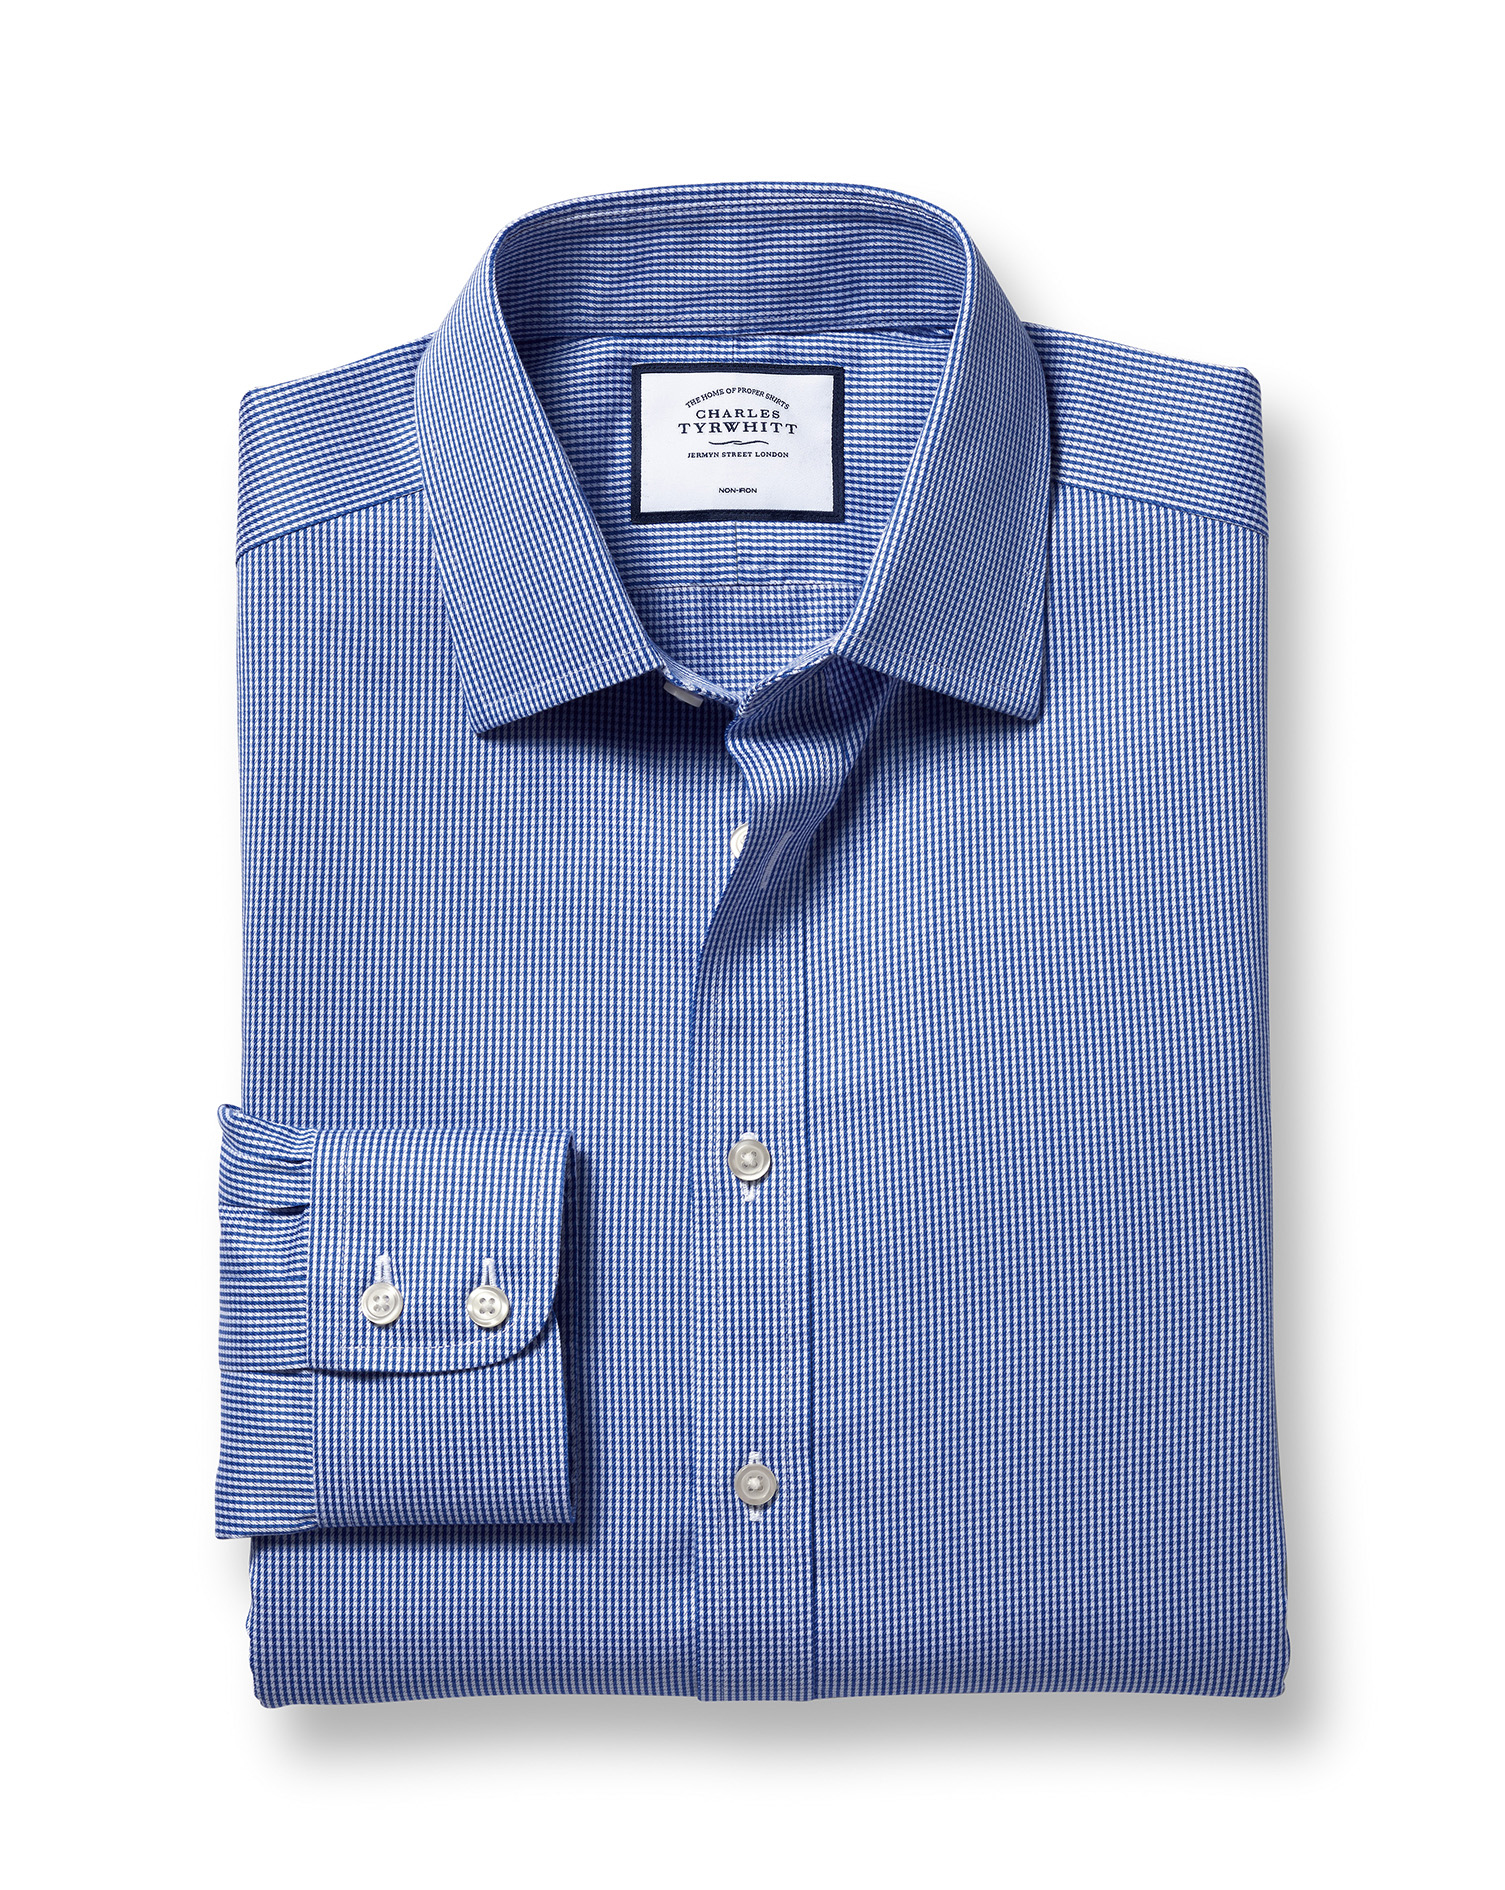 Classic Fit Non-Iron Puppytooth Royal Blue Cotton Formal Shirt Double Cuff Size 19/37 by Charles Tyr